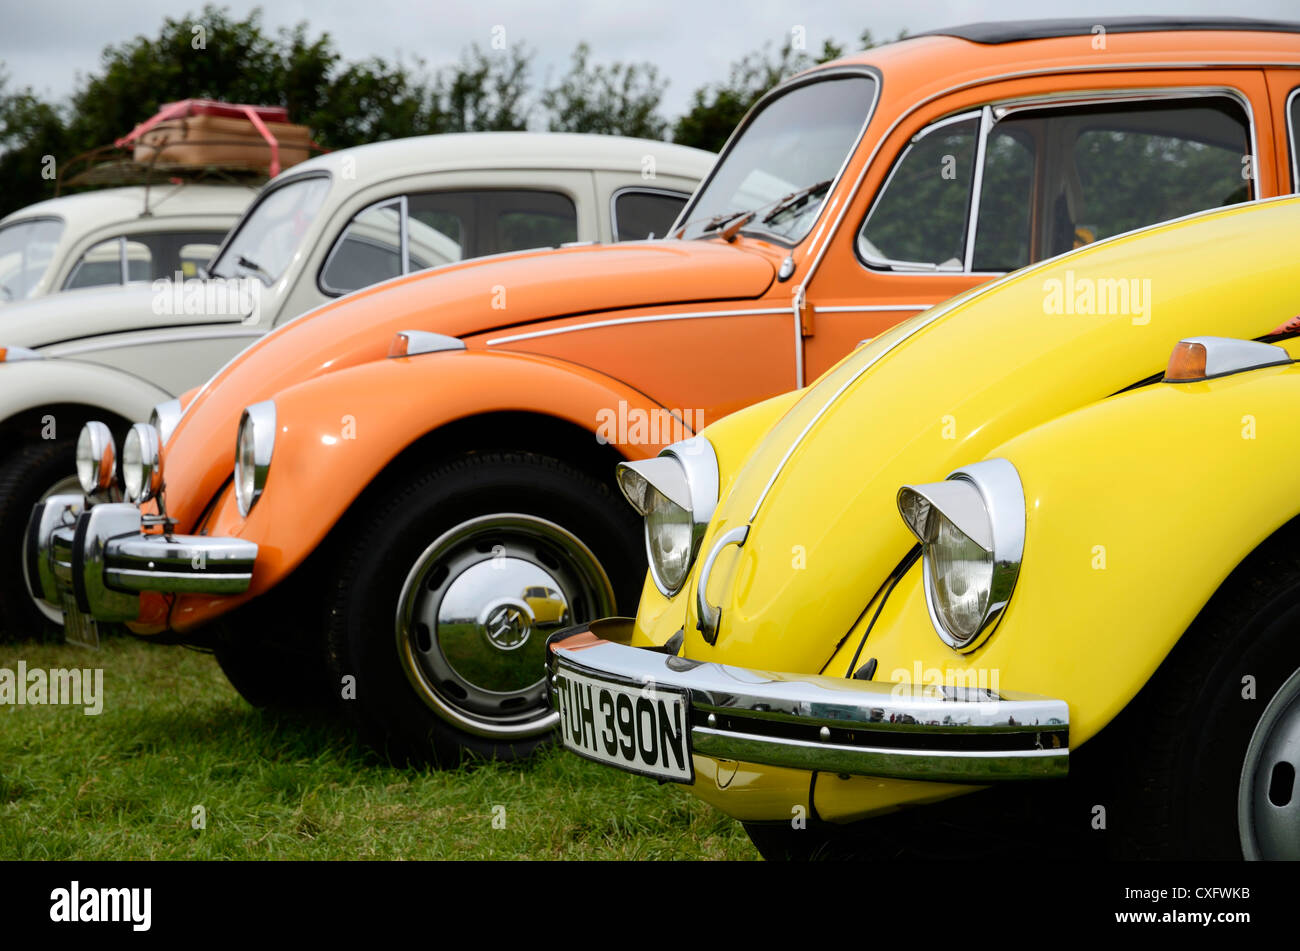 Volkswagen Beetles at a VW rally, UK - Stock Image